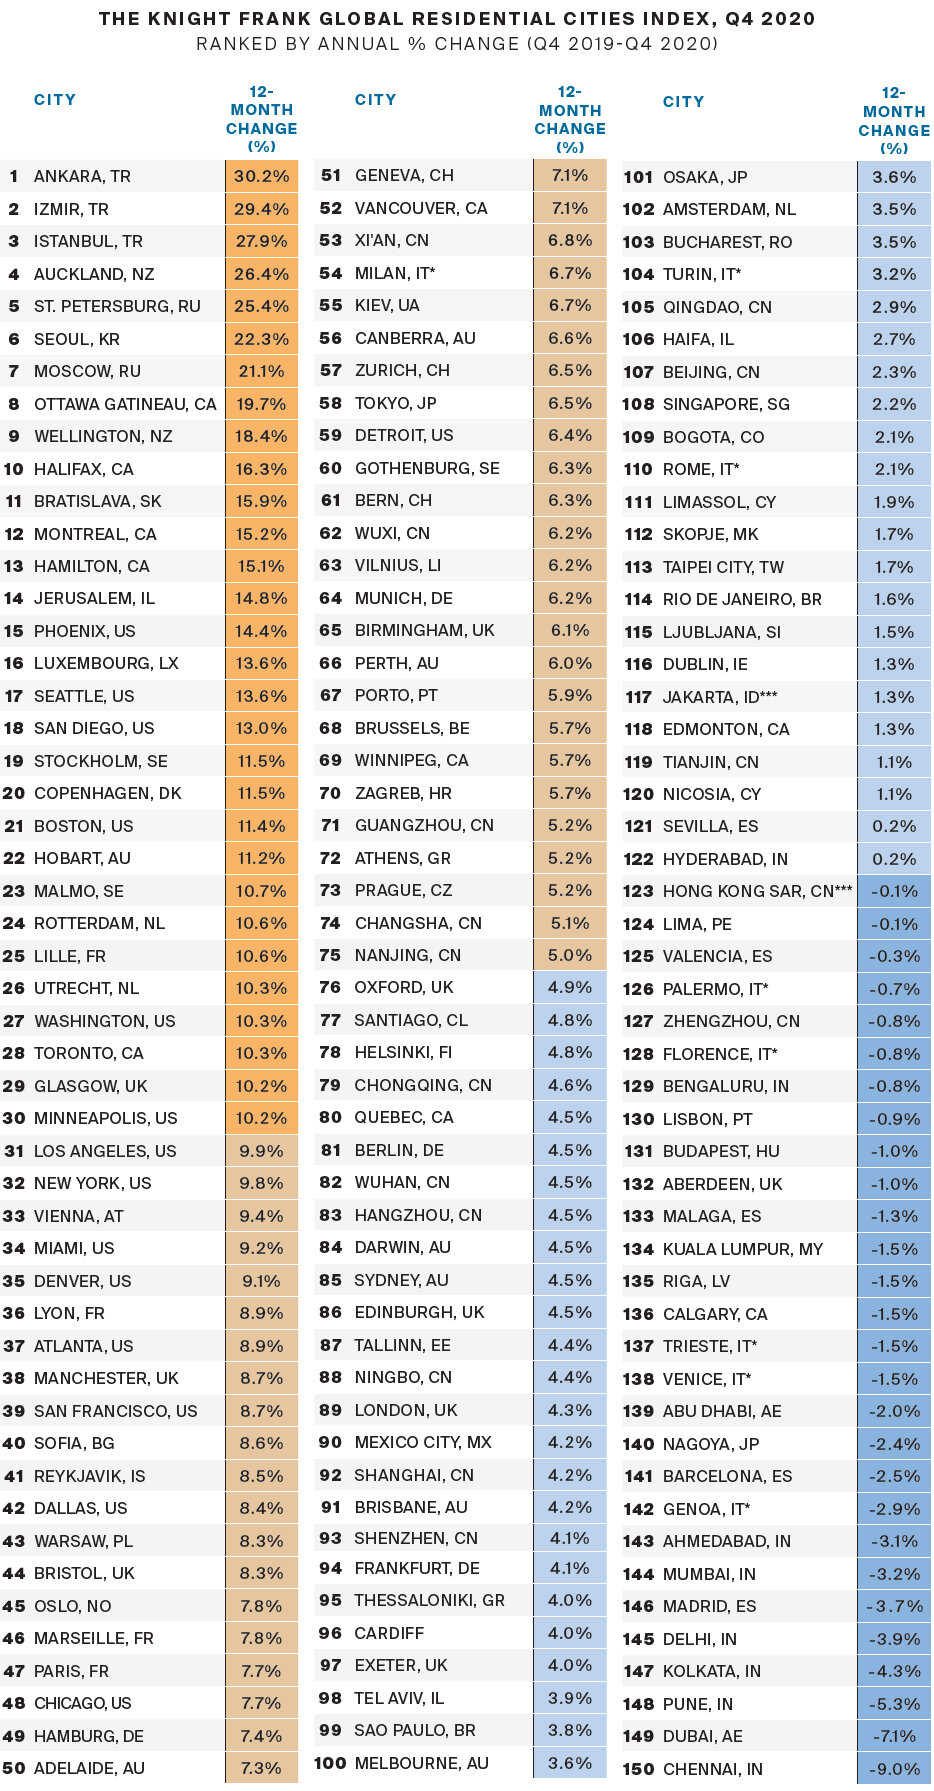 Knight-Frank-Global-Residential-Cities-Index,-Q4-2020.jpg